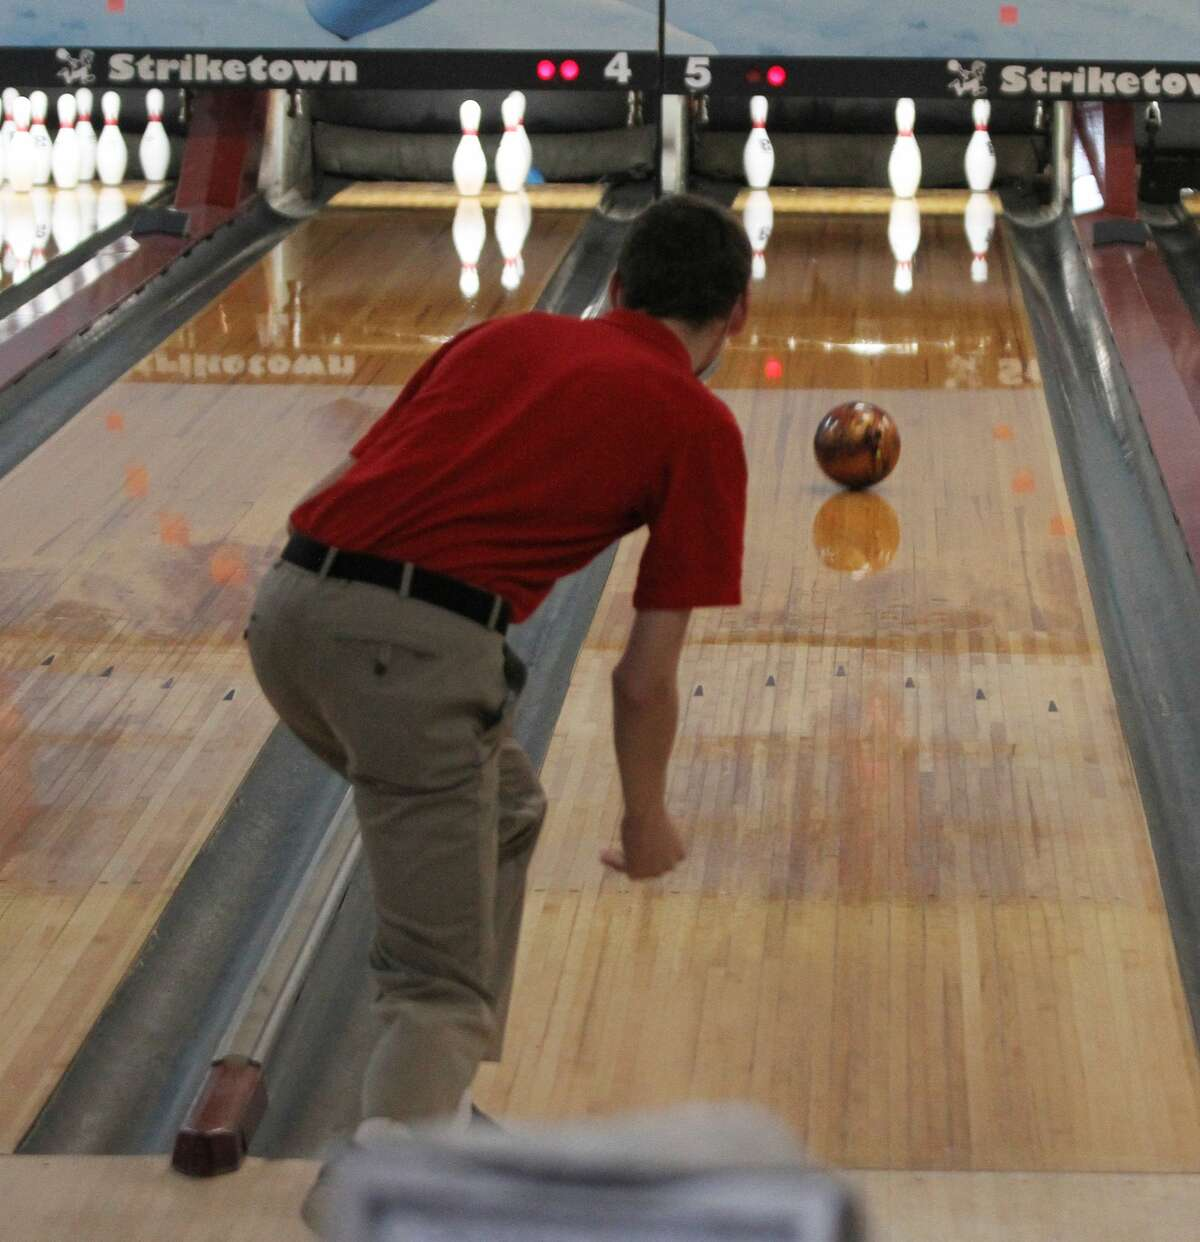 The Manistee Catholic Central bowling team hosted fellow West Michigan D League members in its first-ever home matchat Manistee's Striketown on Saturday.